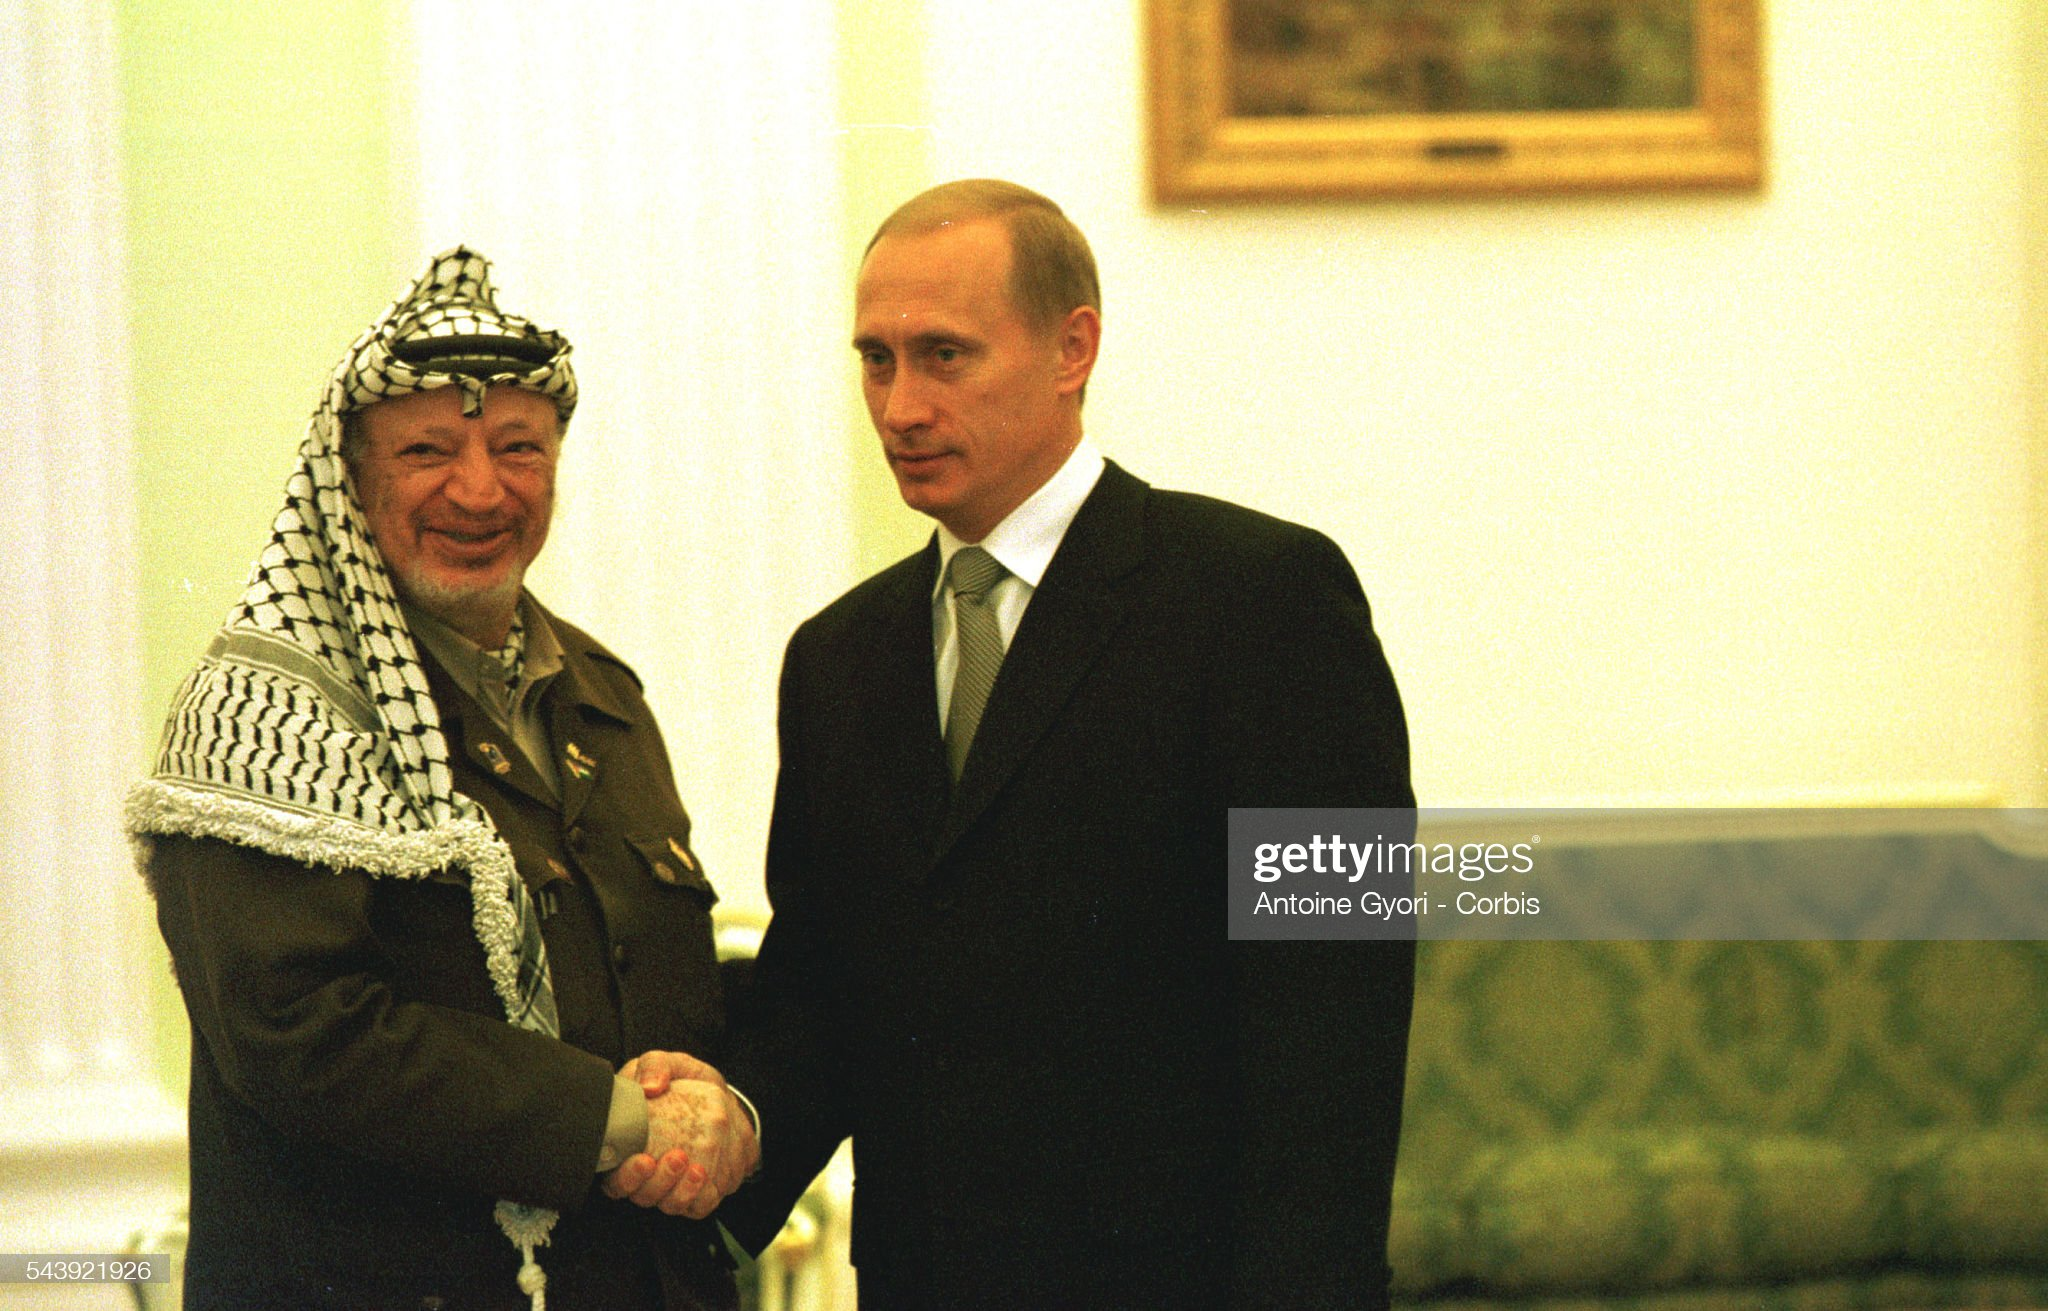 ¿Cuánto mide Vladimir Putin? - Altura - Real height Vladimir-putin-and-yasser-arafat-shake-hands-at-the-kremlin-picture-id543921926?s=2048x2048